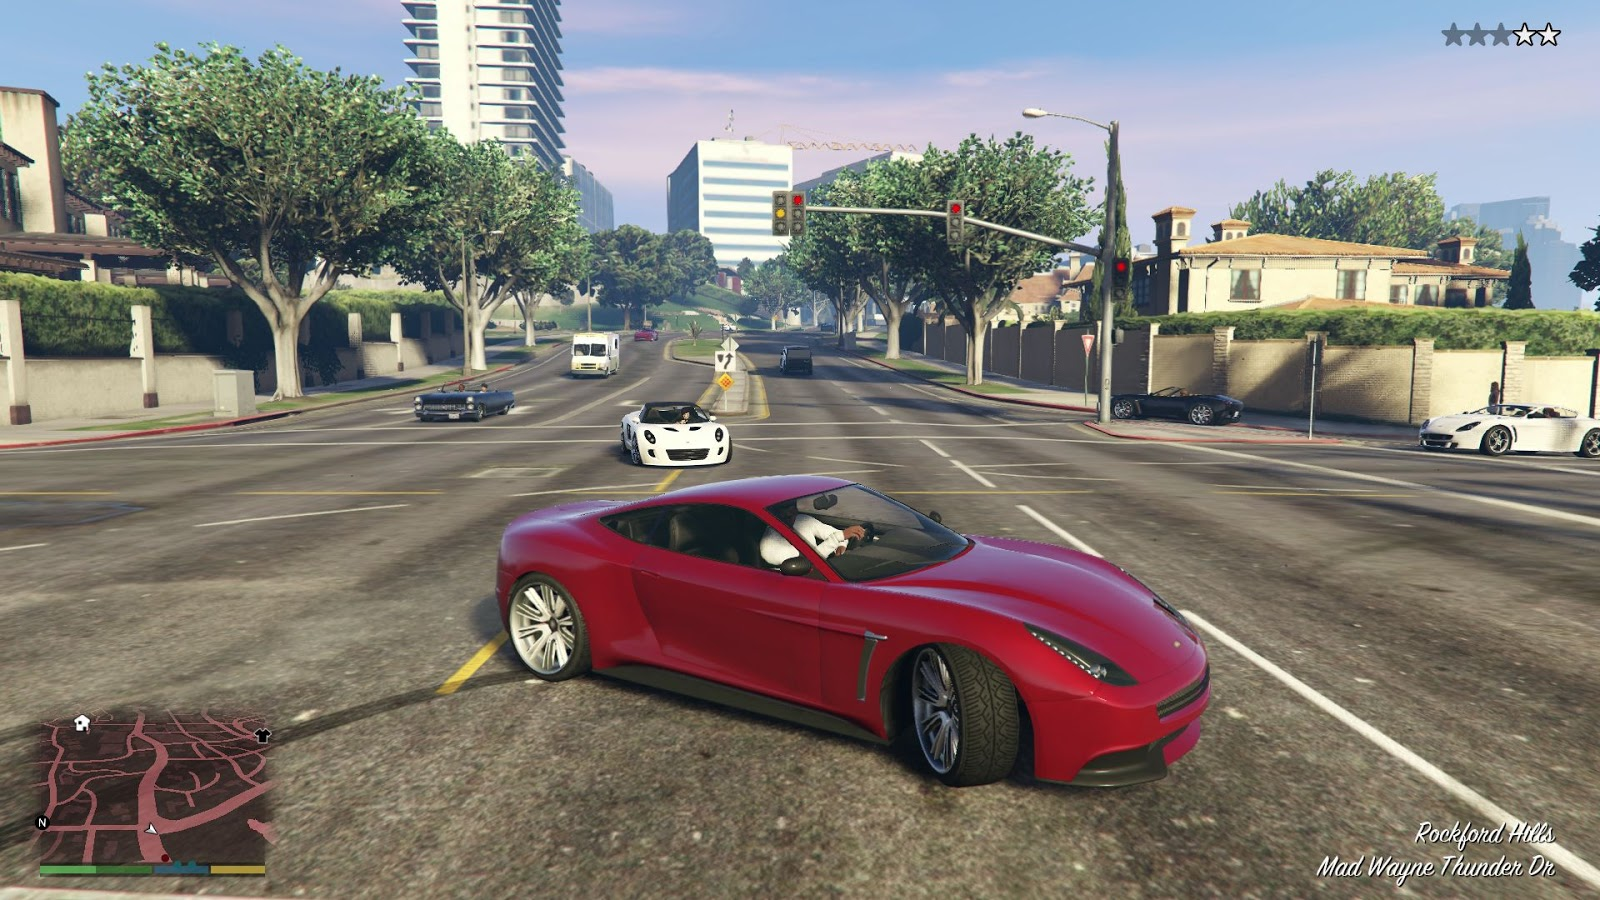 how to download gta5 on pc 36gb